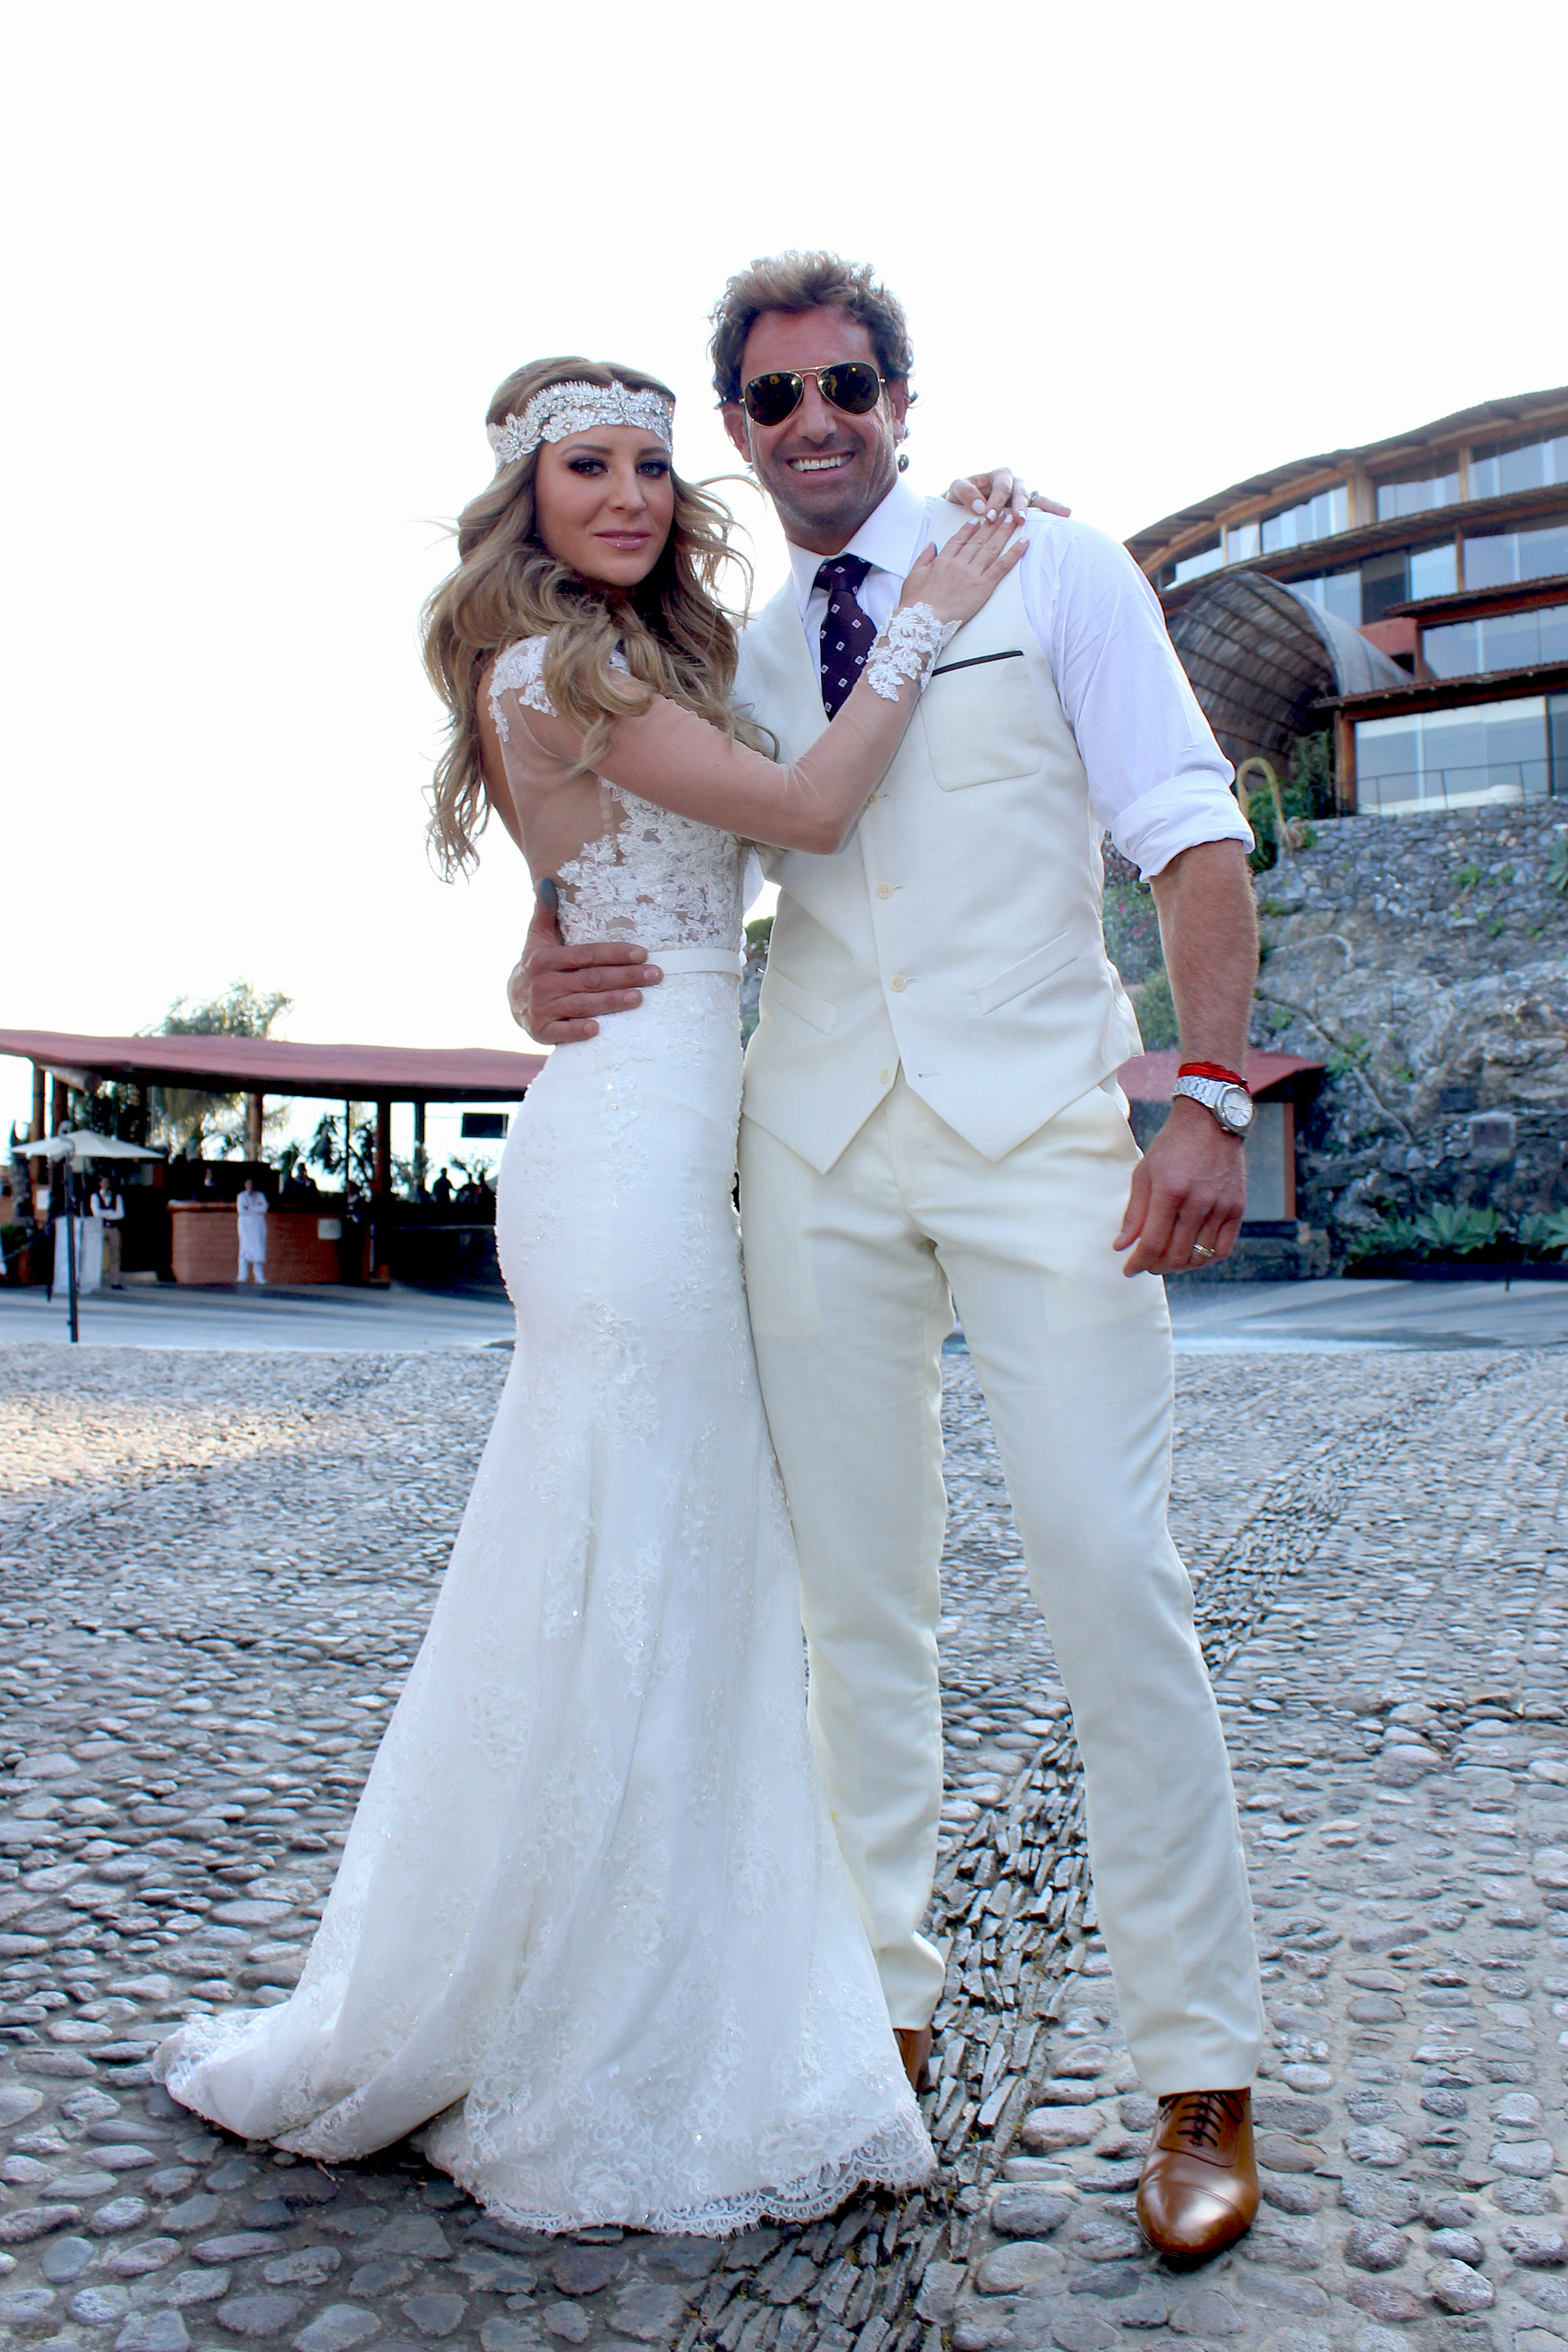 Dorable Vestidos De Novia De Famosas Elaboration - All Wedding ...